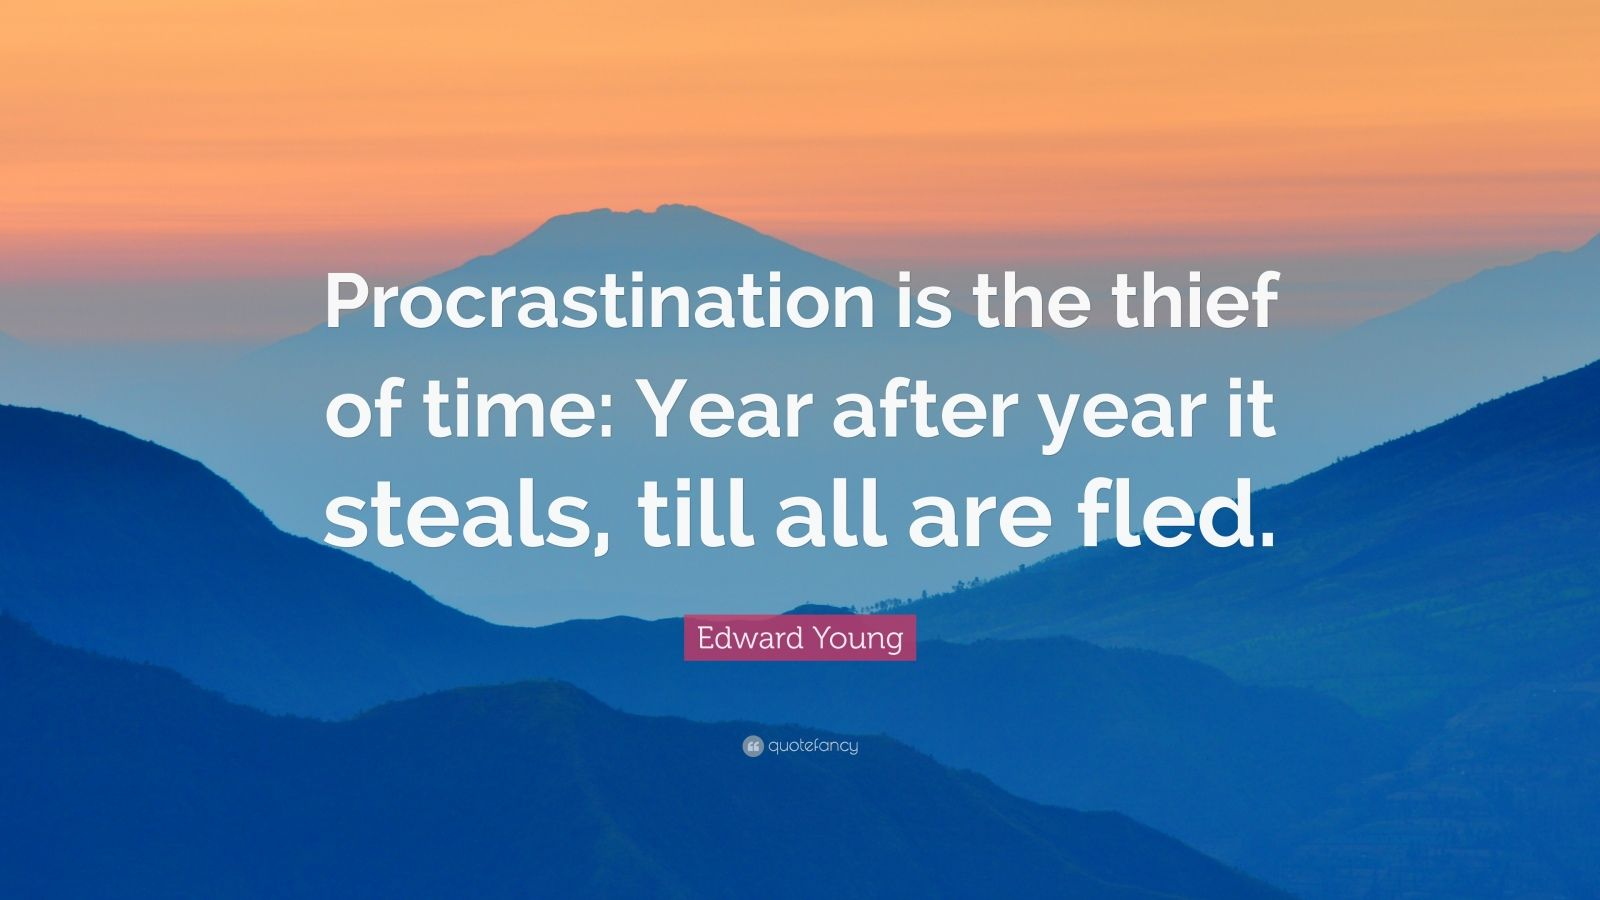 essay on procrastination is the thief of time Oxford university press, 2010 (co-edited with chrisoula andreou) description when we fail to achieve our goals, procrastination is often the culprit but how exactly is procrastination to be understood.